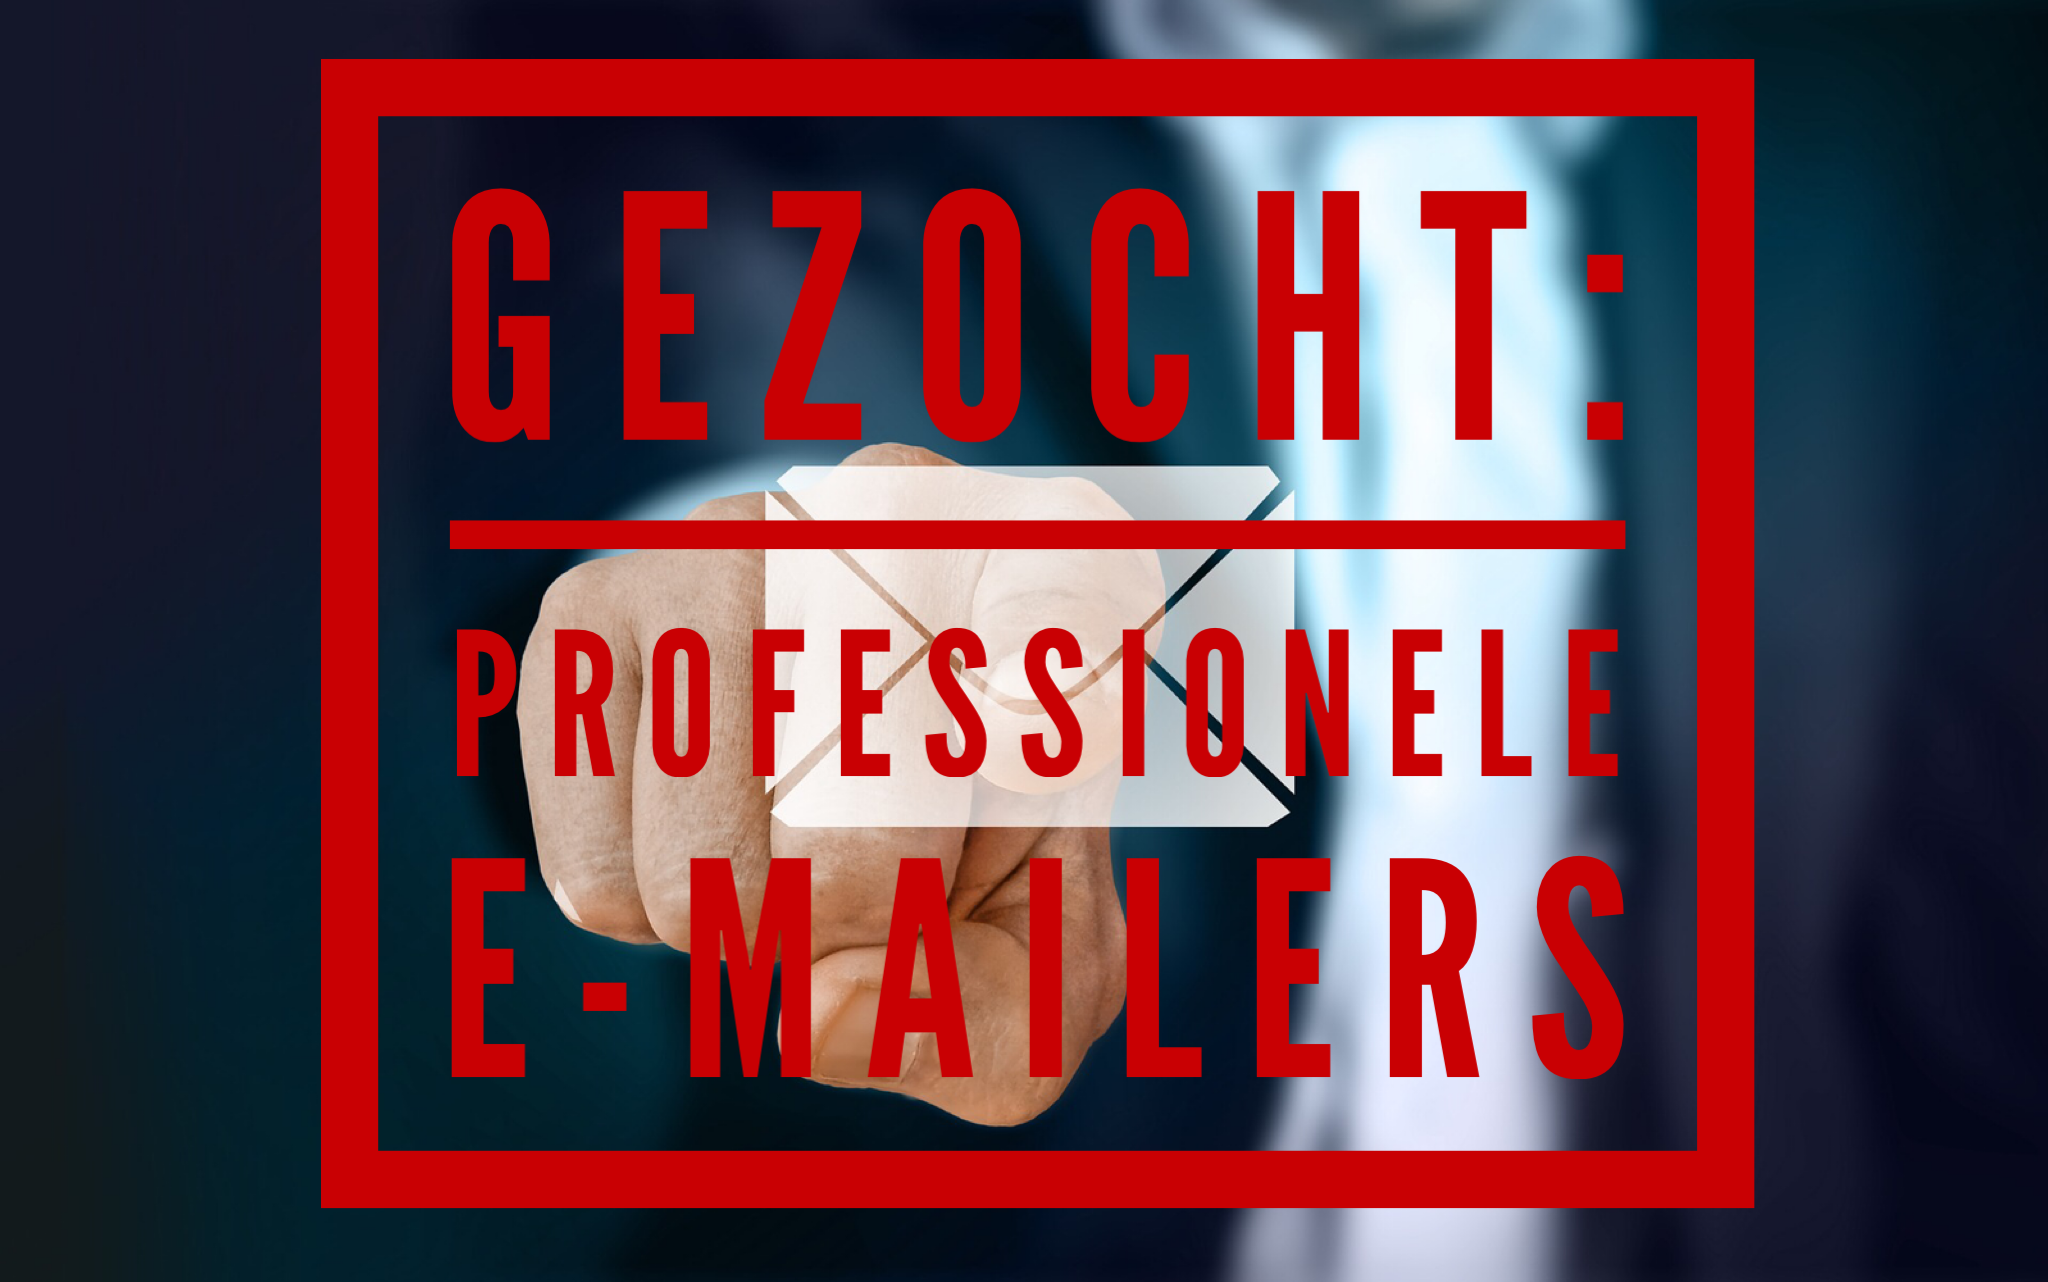 Inspirerende vacature: professionele e-mailers